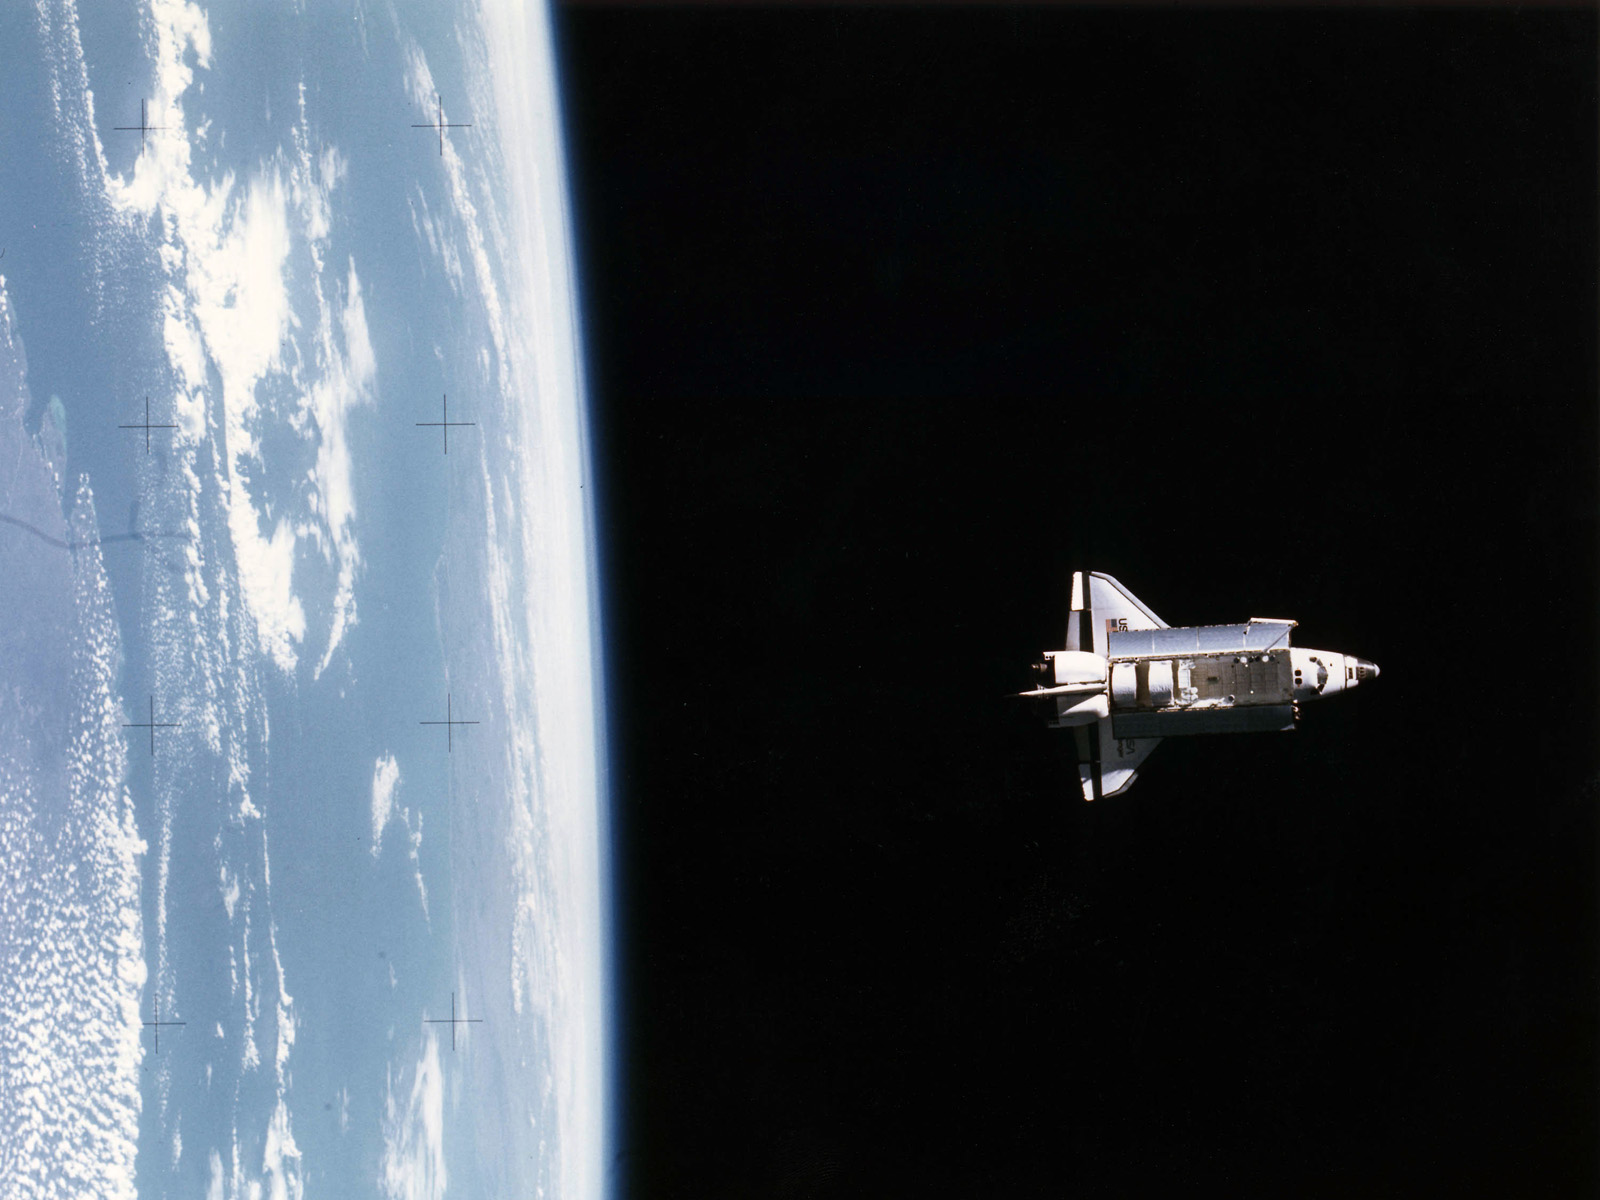 space shuttle gravity - photo #23